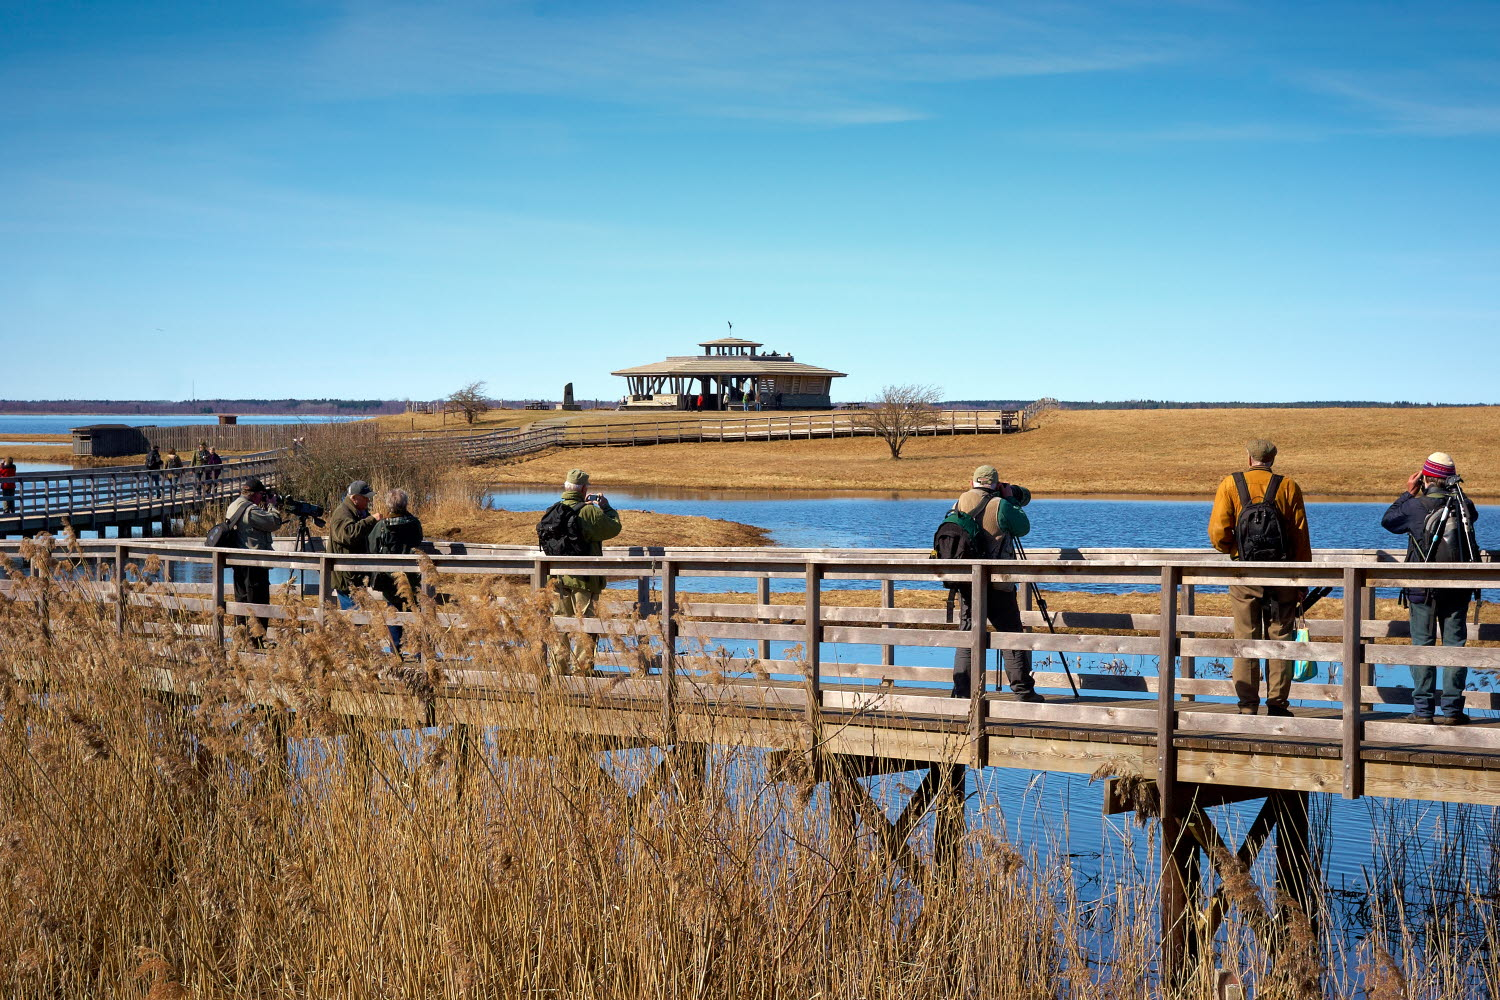 Birdwatchers at Hornborgasjön - Photo Jonas Ingman